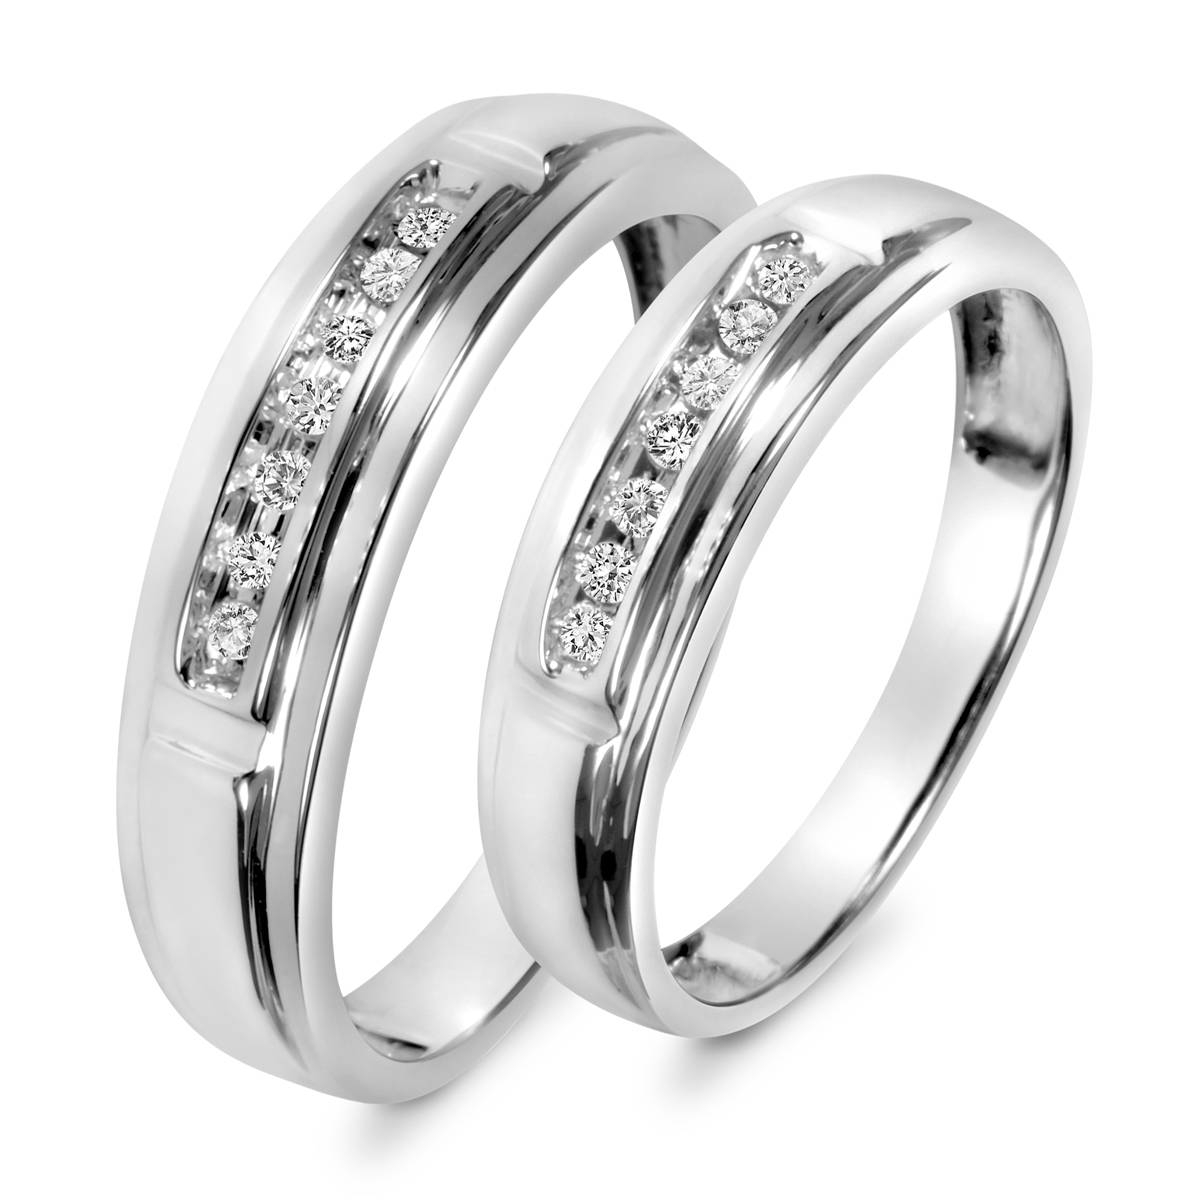 50 White Gold Wedding Ring Sets His And Hers, Com: His Her Wedding With Cheap Wedding Bands Sets His And Hers (Gallery 15 of 15)